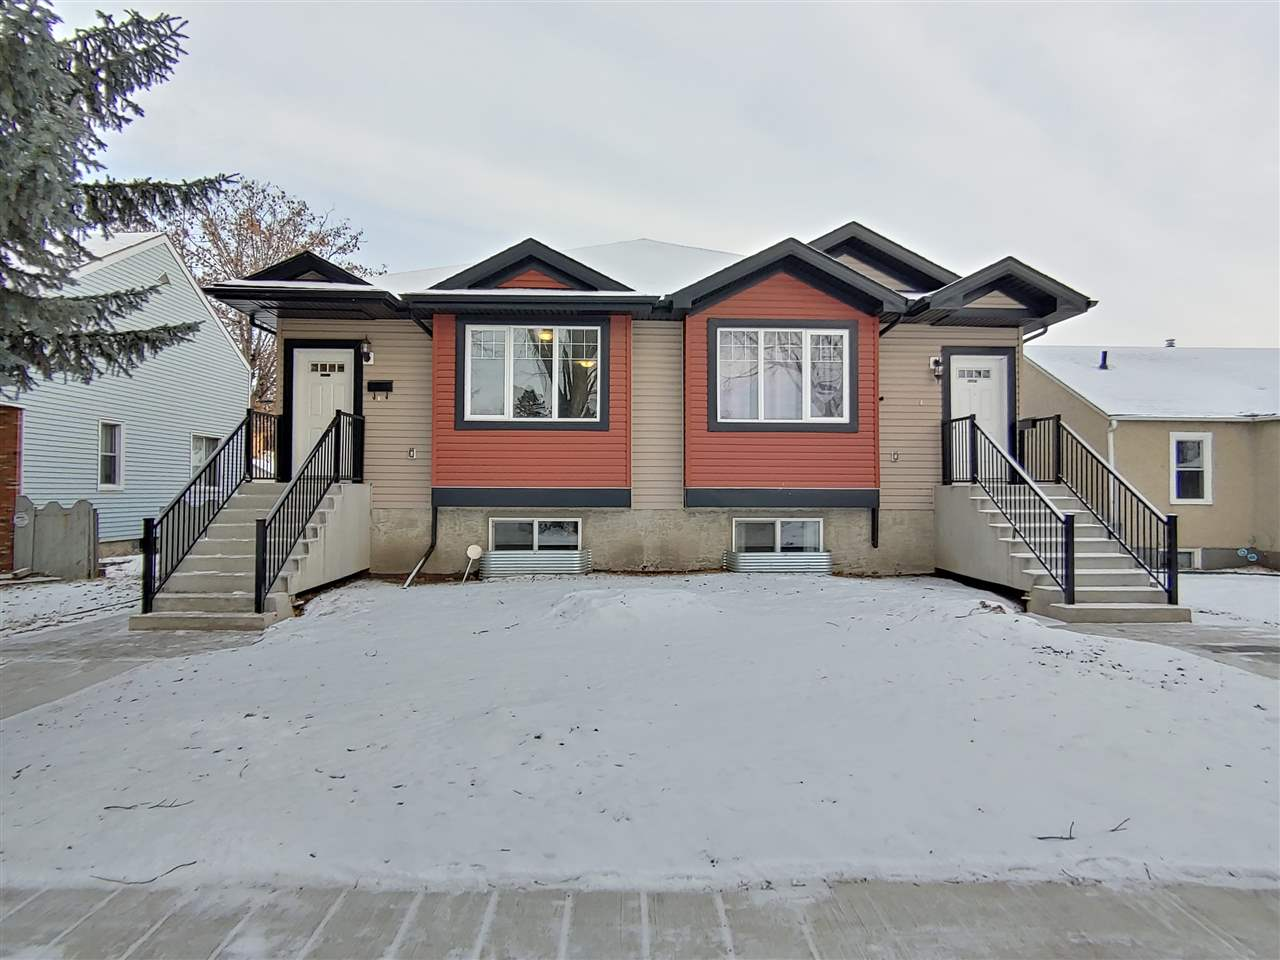 Inglewood. Raised bungalow built in year 2015. 6+4 bedroom with master ensuite bathroom. 2nd kitchen, laundry with full bath and 2 bedrooms in basement with separate entrance. Close to schools and parks and downtown. Immediate possession for 11639.